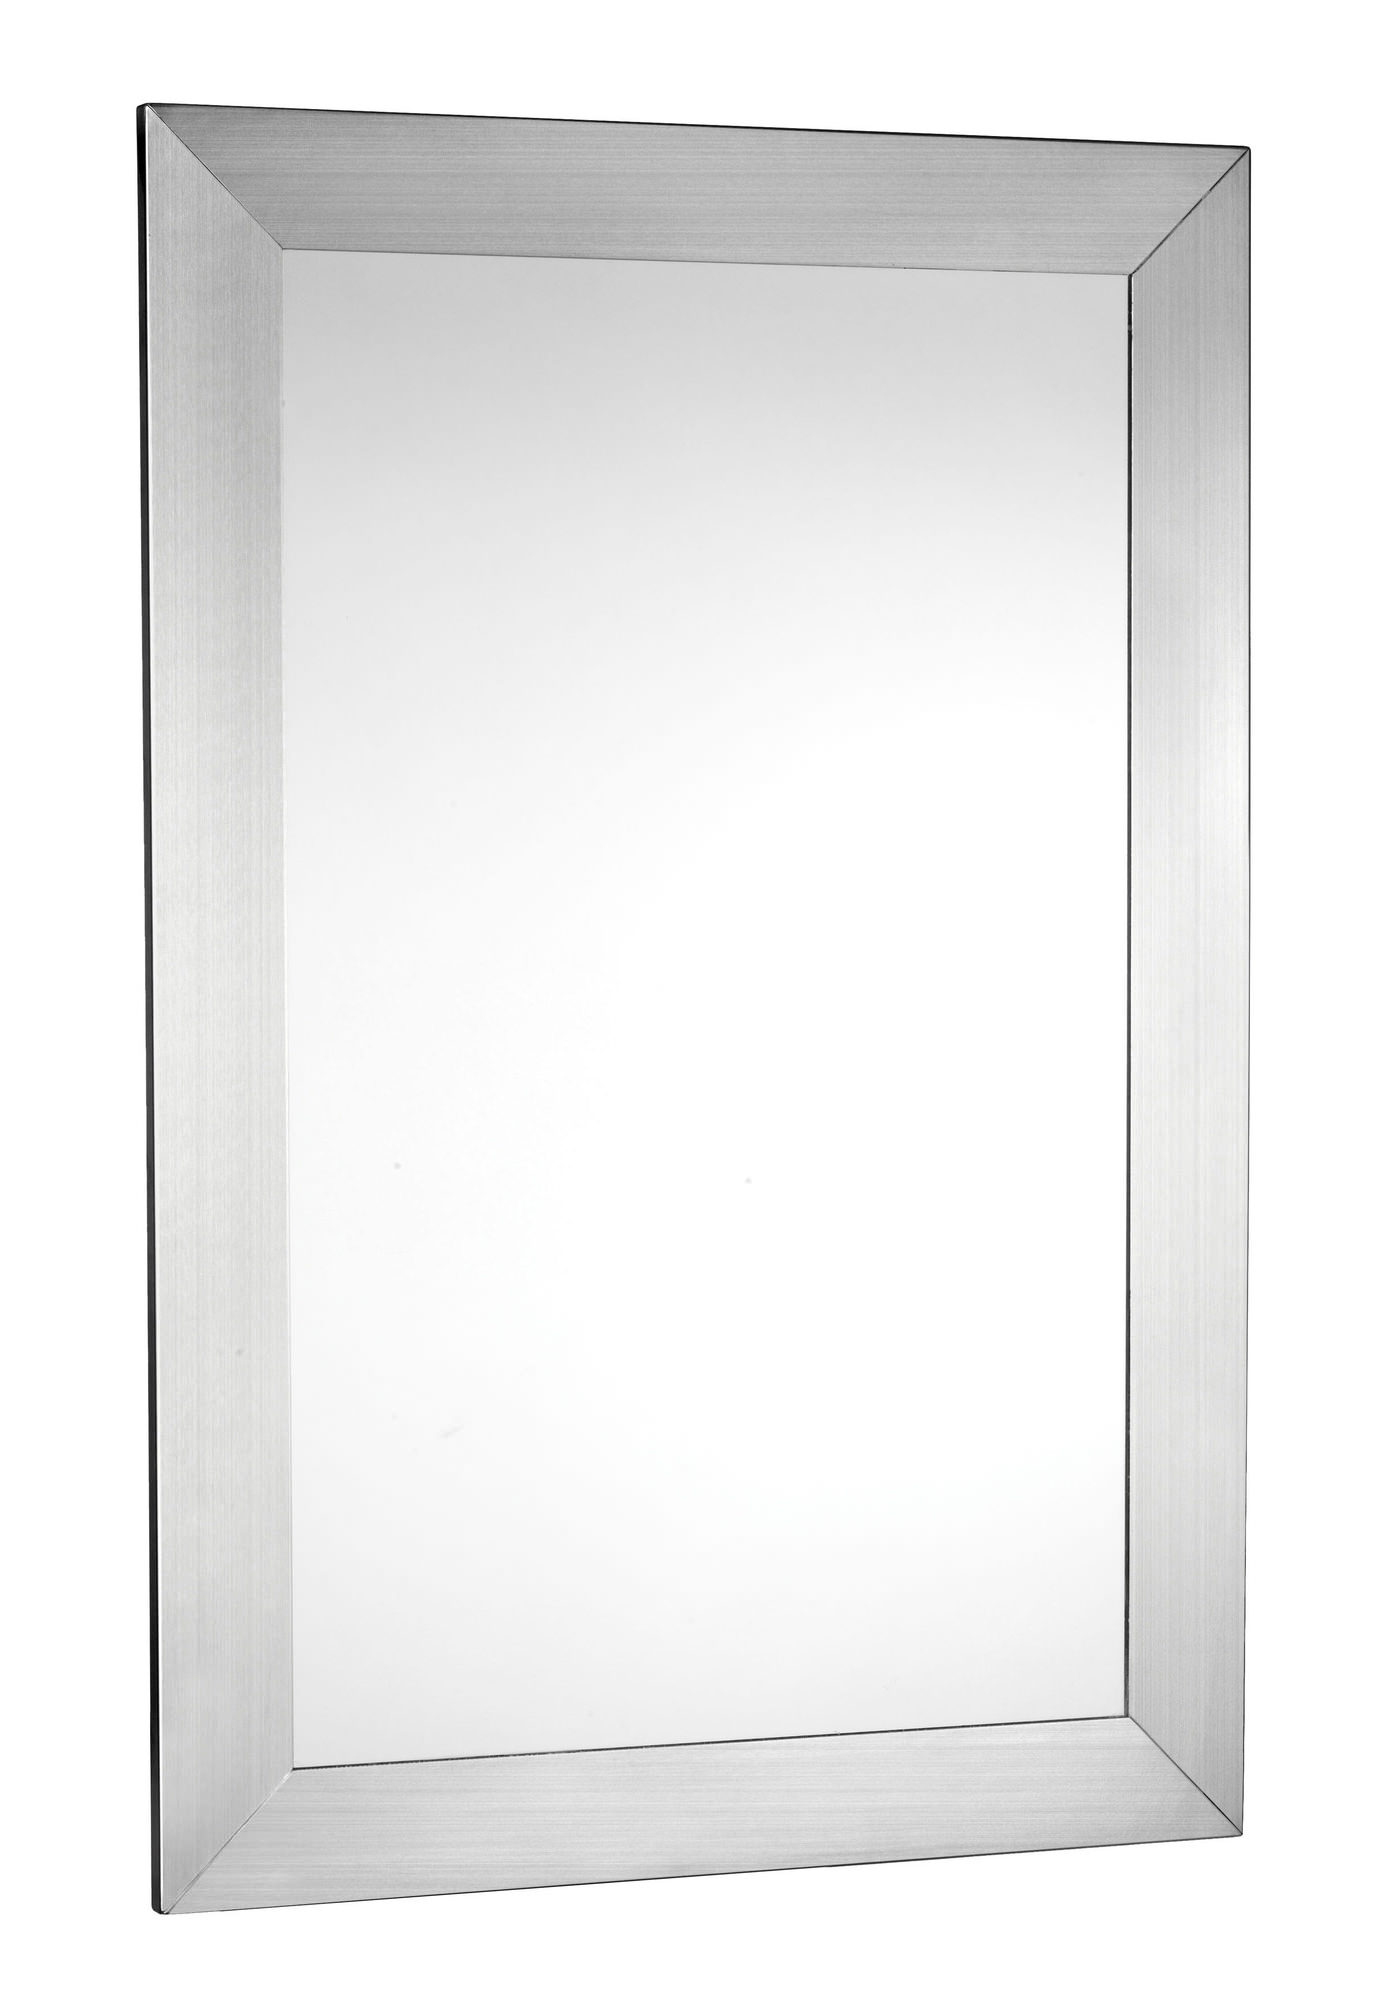 stainless steel bathroom mirror croydex parkgate mirror with brushed stainless steel frame 20644